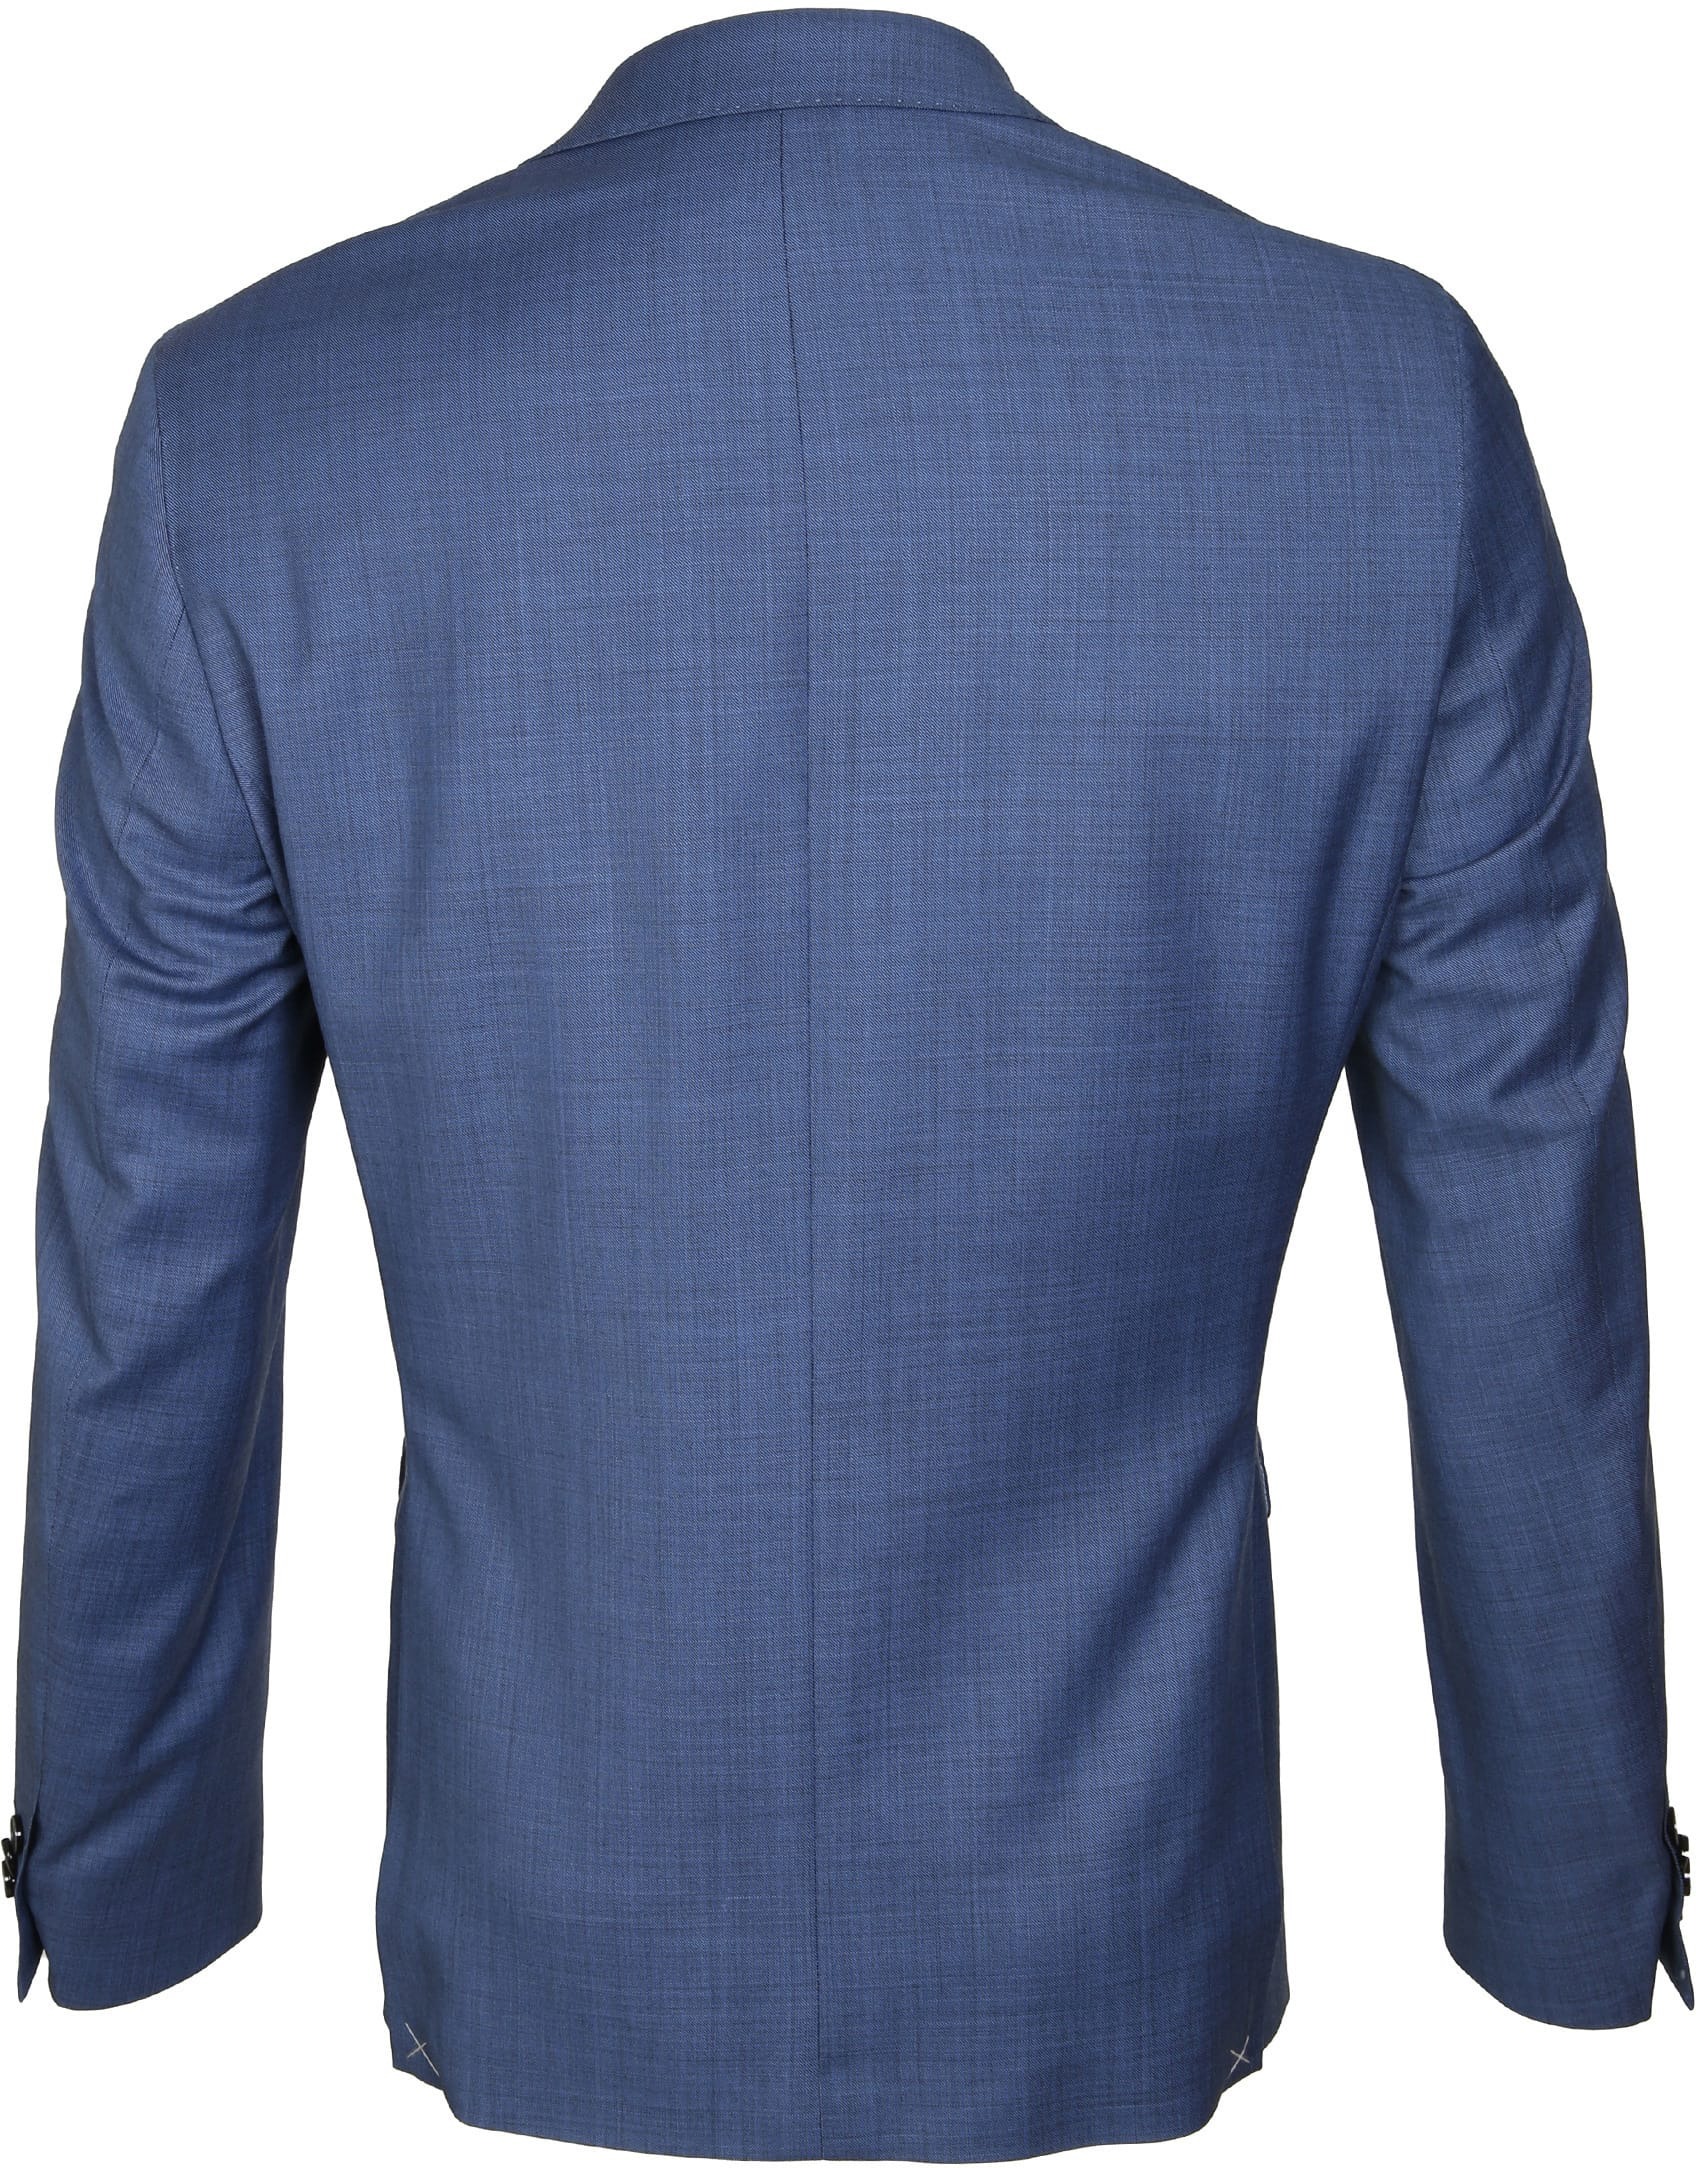 Suitable Suit Strato Indigo foto 4